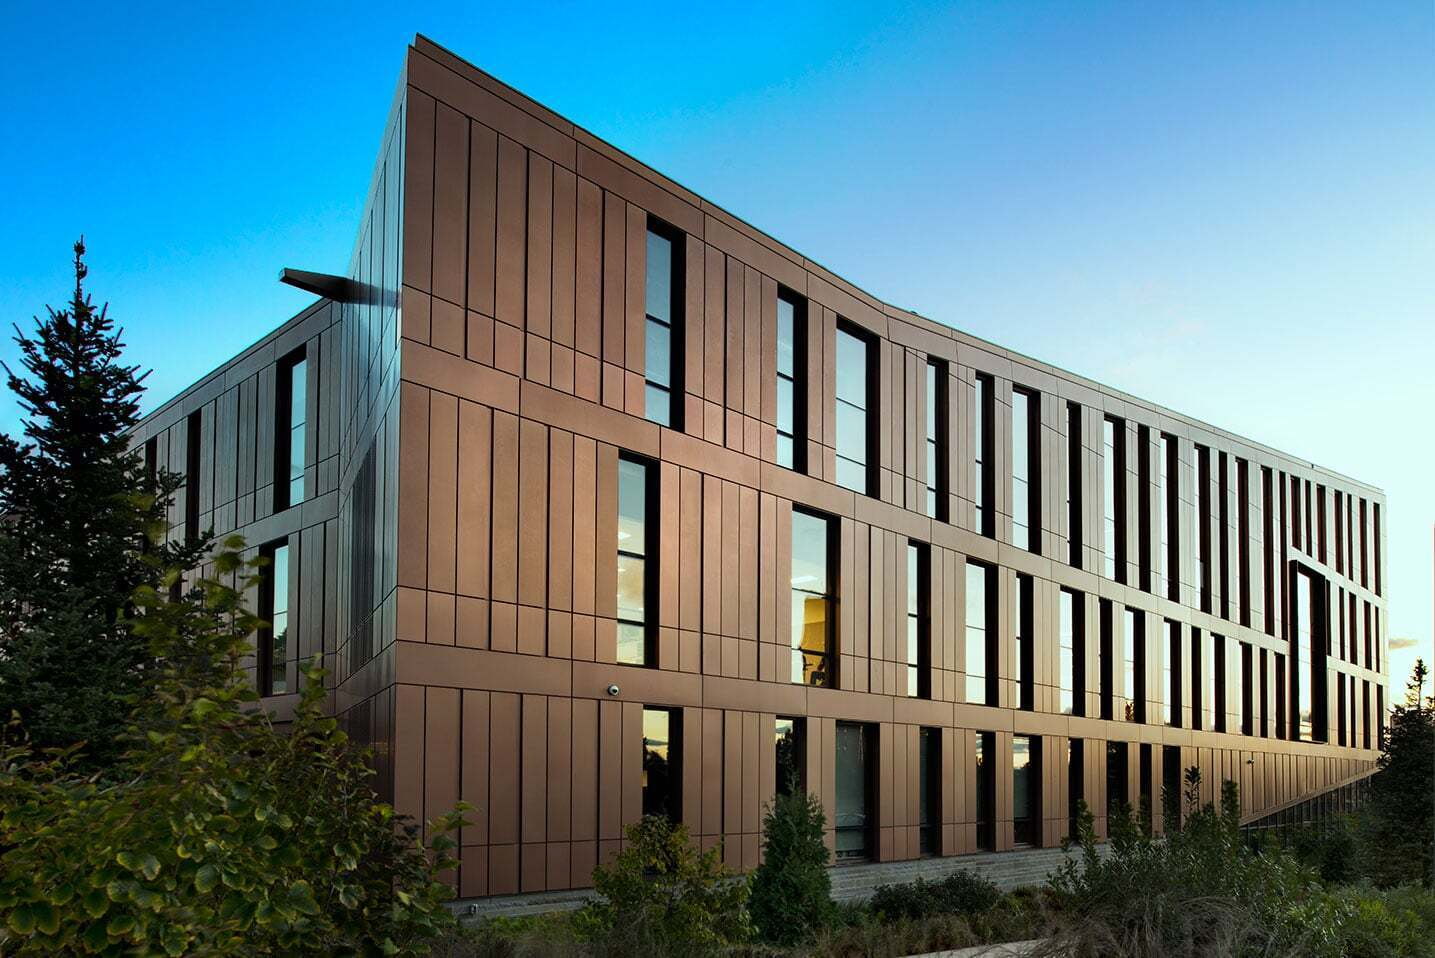 This University wanted a unique exterior to their new building.  They chose Dri-Design Shadow Series panels in order to create depth and definition to the brand-new building on campus.   Individual panels can be extended at varying depths to create texture or a dynamic variation in patterns, all while keeping the substrate and weather barrier in the same plane.